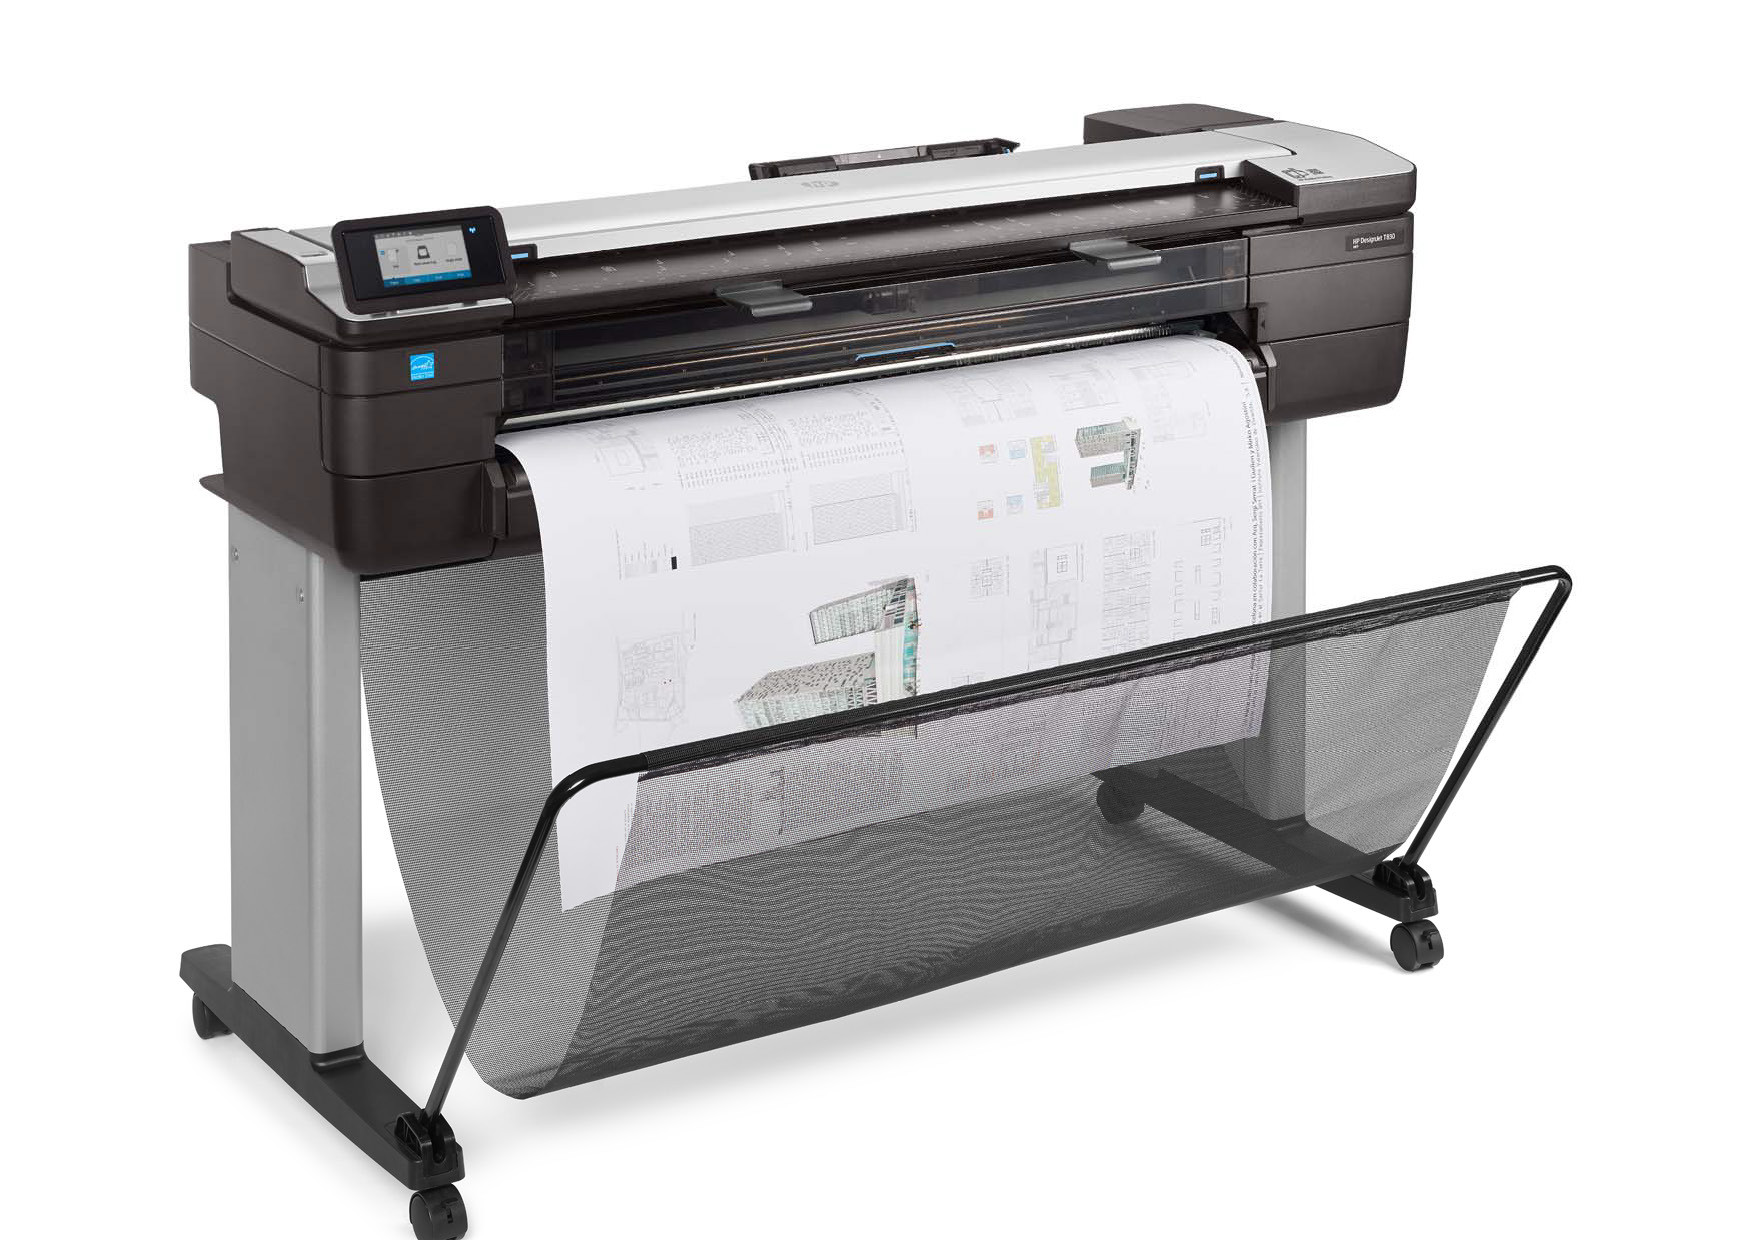 Hp Designjet T830 Multi Function Printer F9a30a Hewlett Packard Plotter T520 24 Inch Setting A Bench Mark For Functional Wide Format Printing